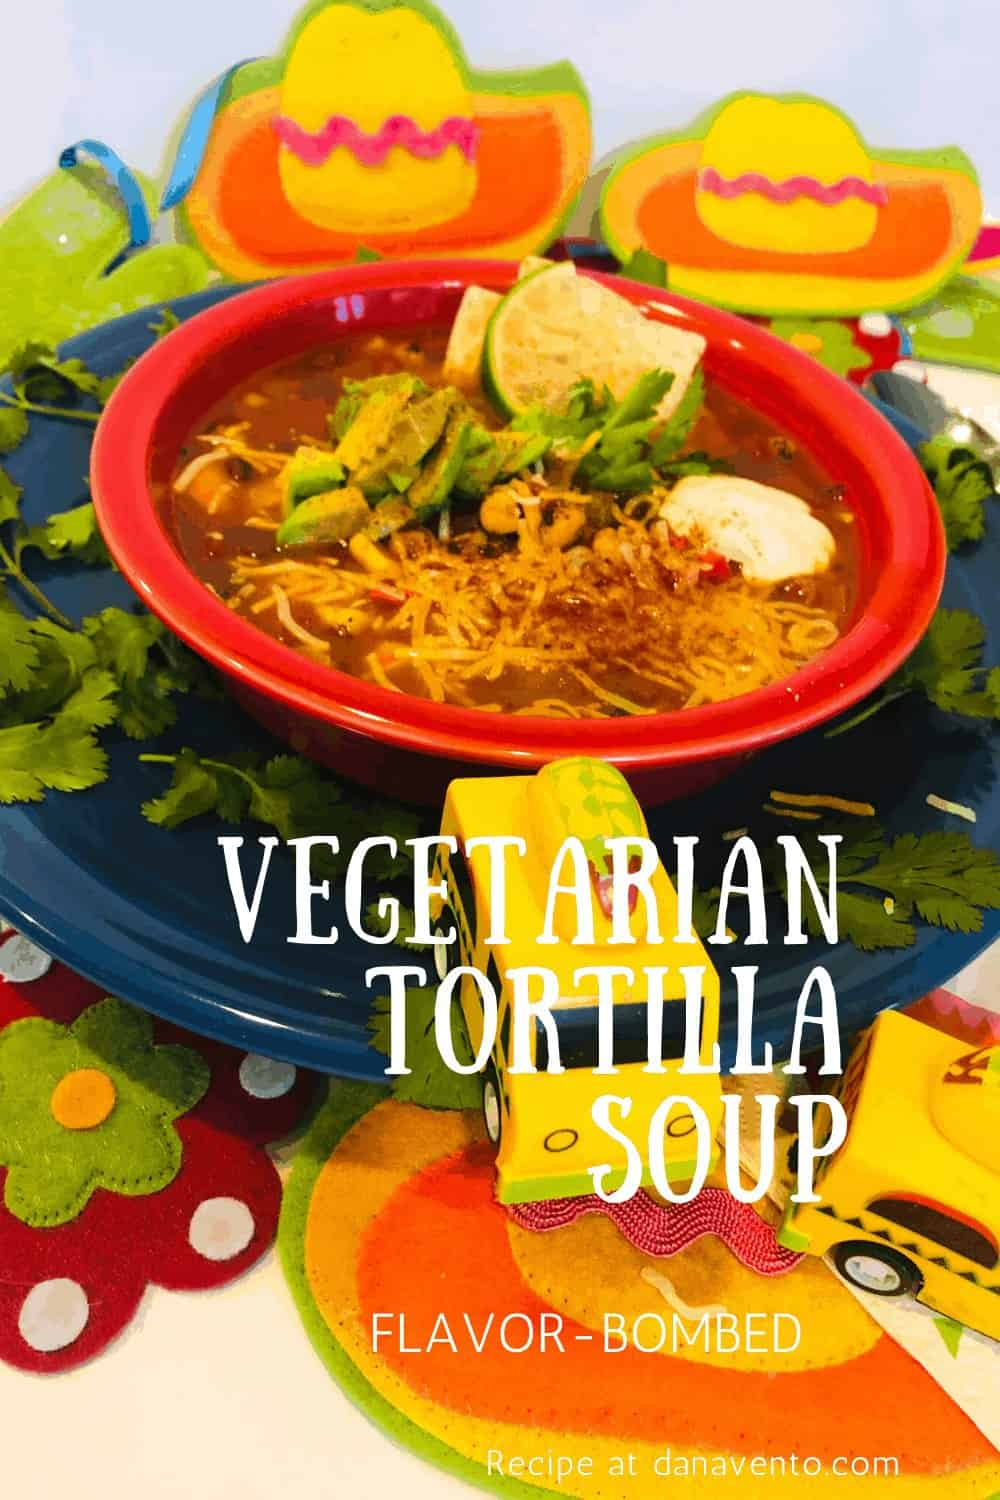 tilted angle of flavor-bombed tortilla soup